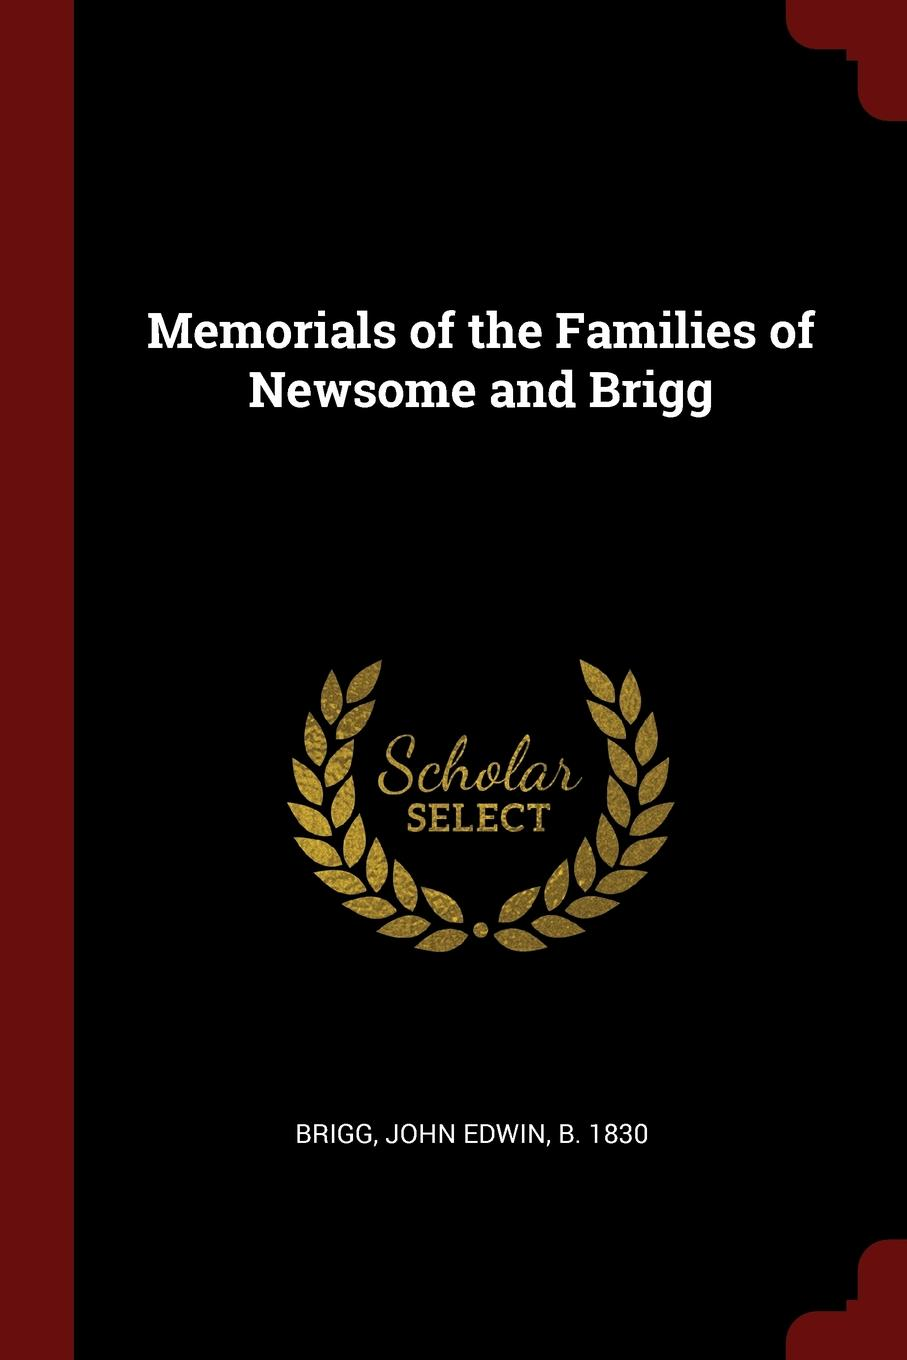 Memorials of the Families of Newsome and Brigg